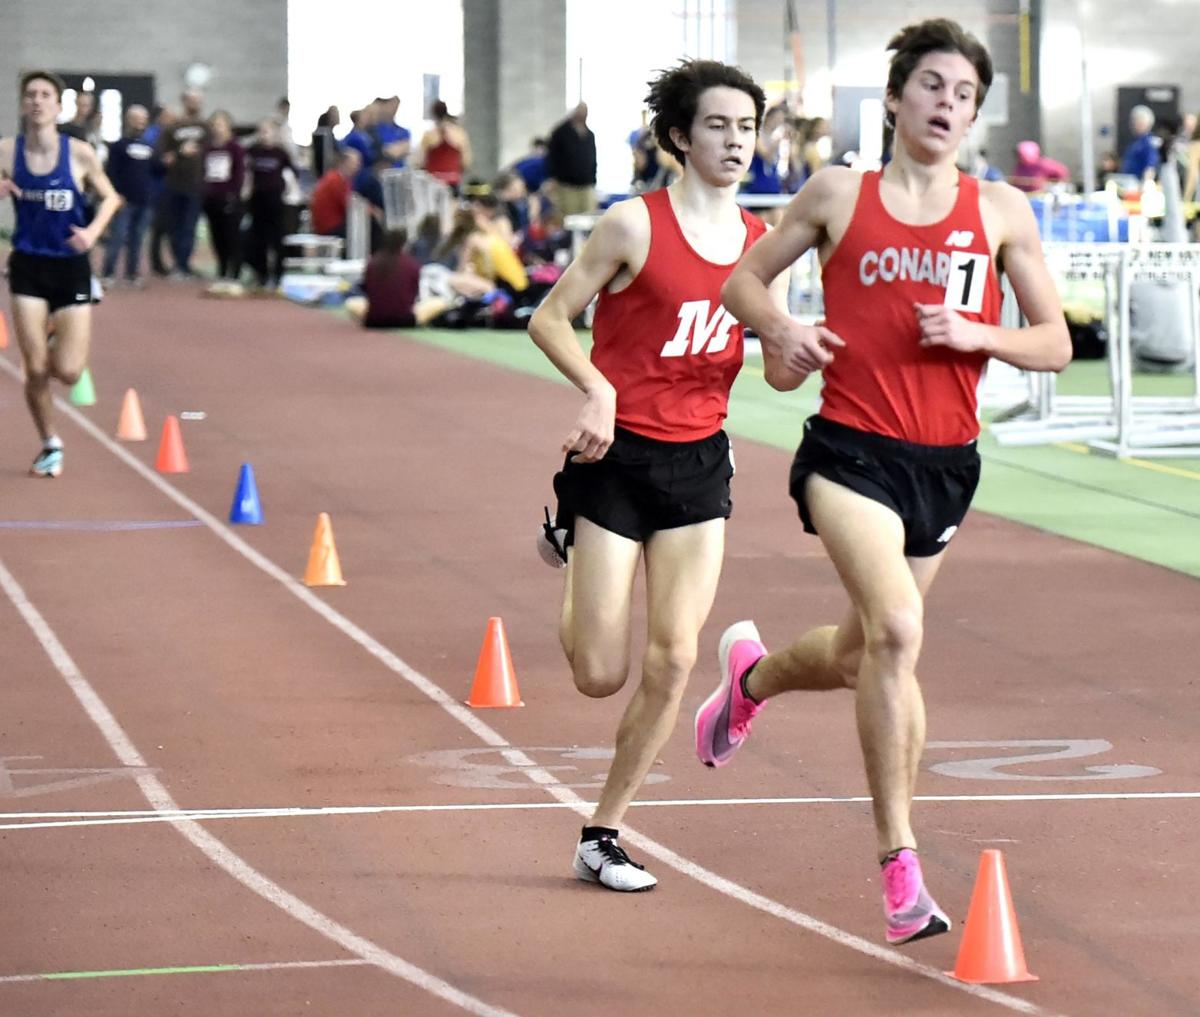 Conard's Sherry shatters State Open record in 3200